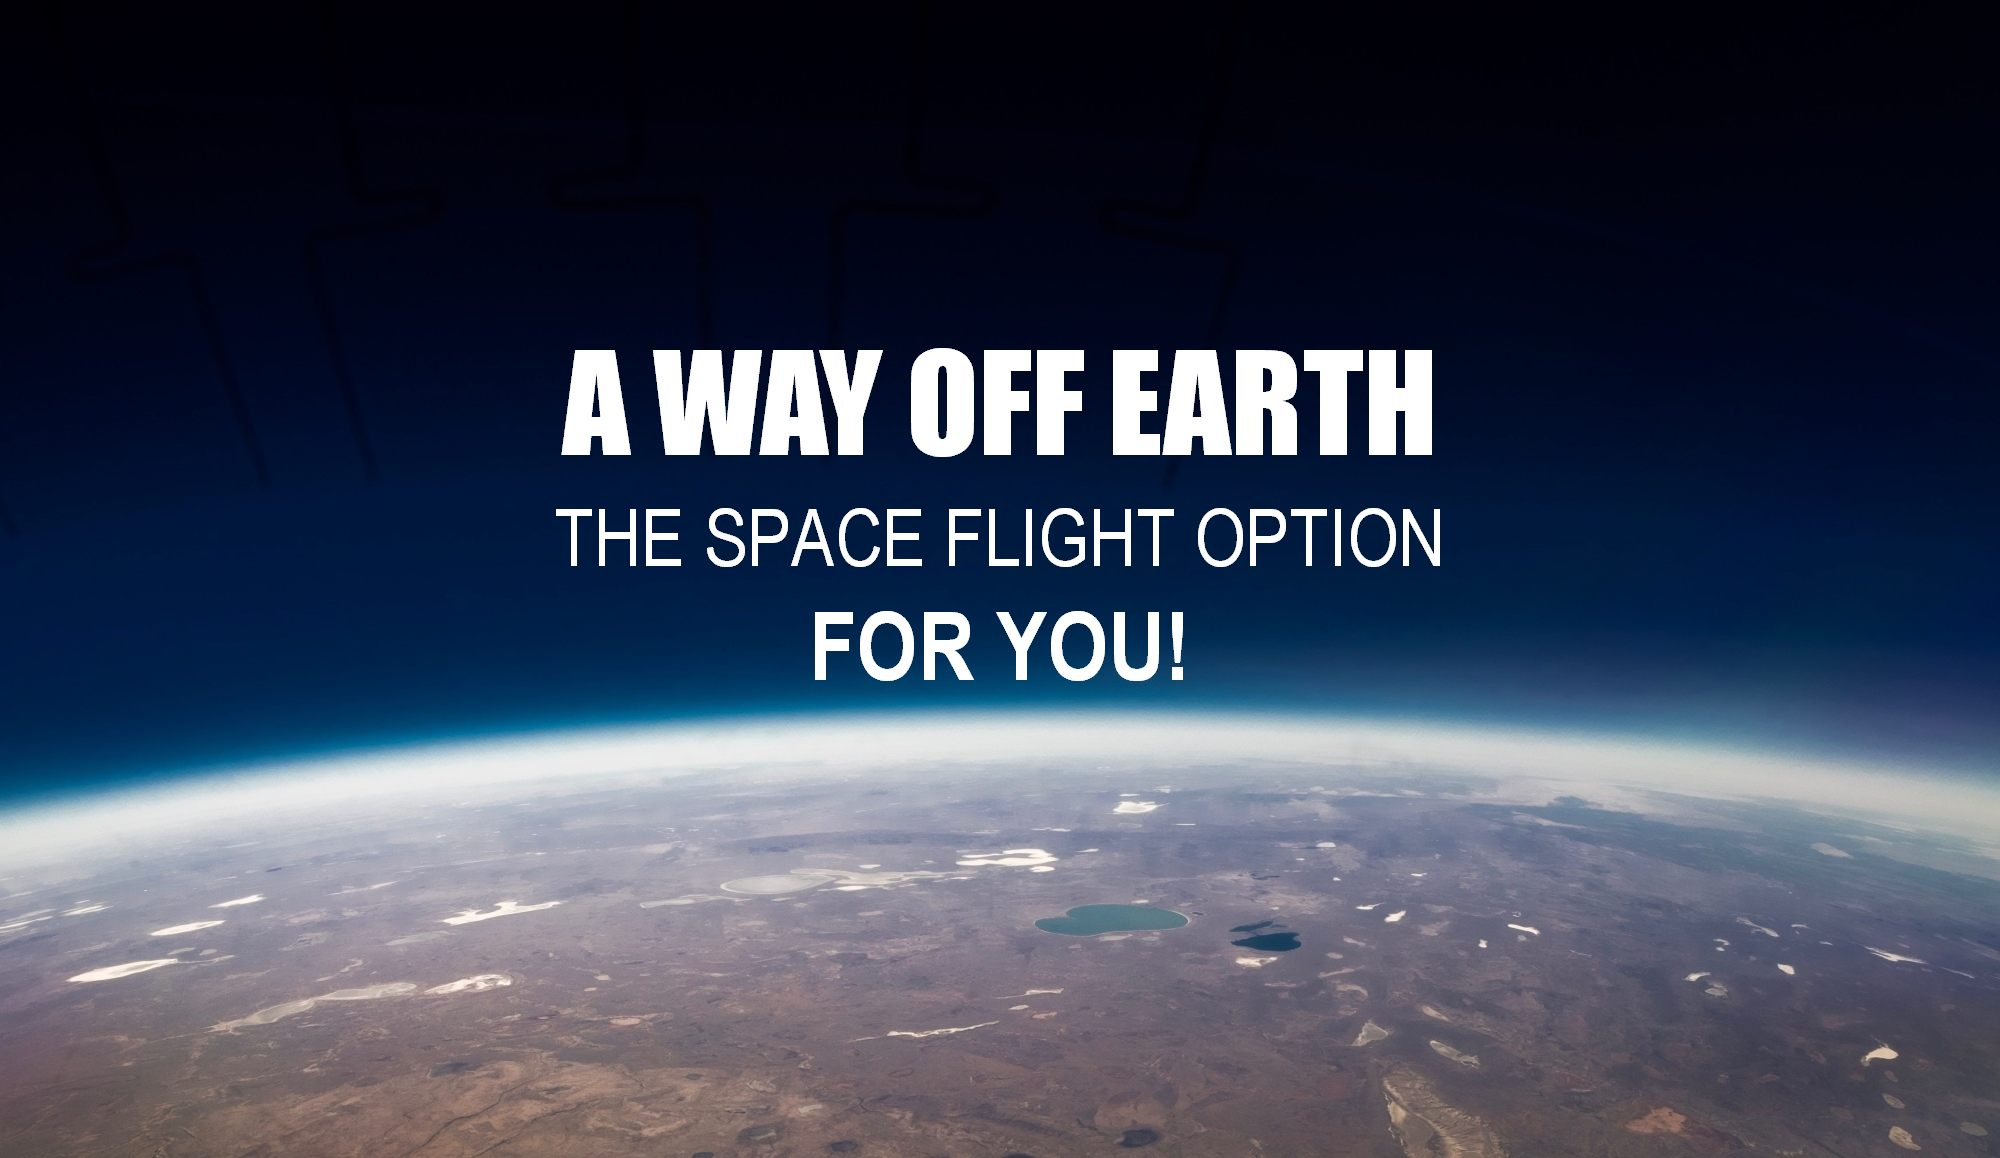 View of earth from space depicts a way off earth for you. Does Virgin flight offer go to space option for me to escape planet problems.